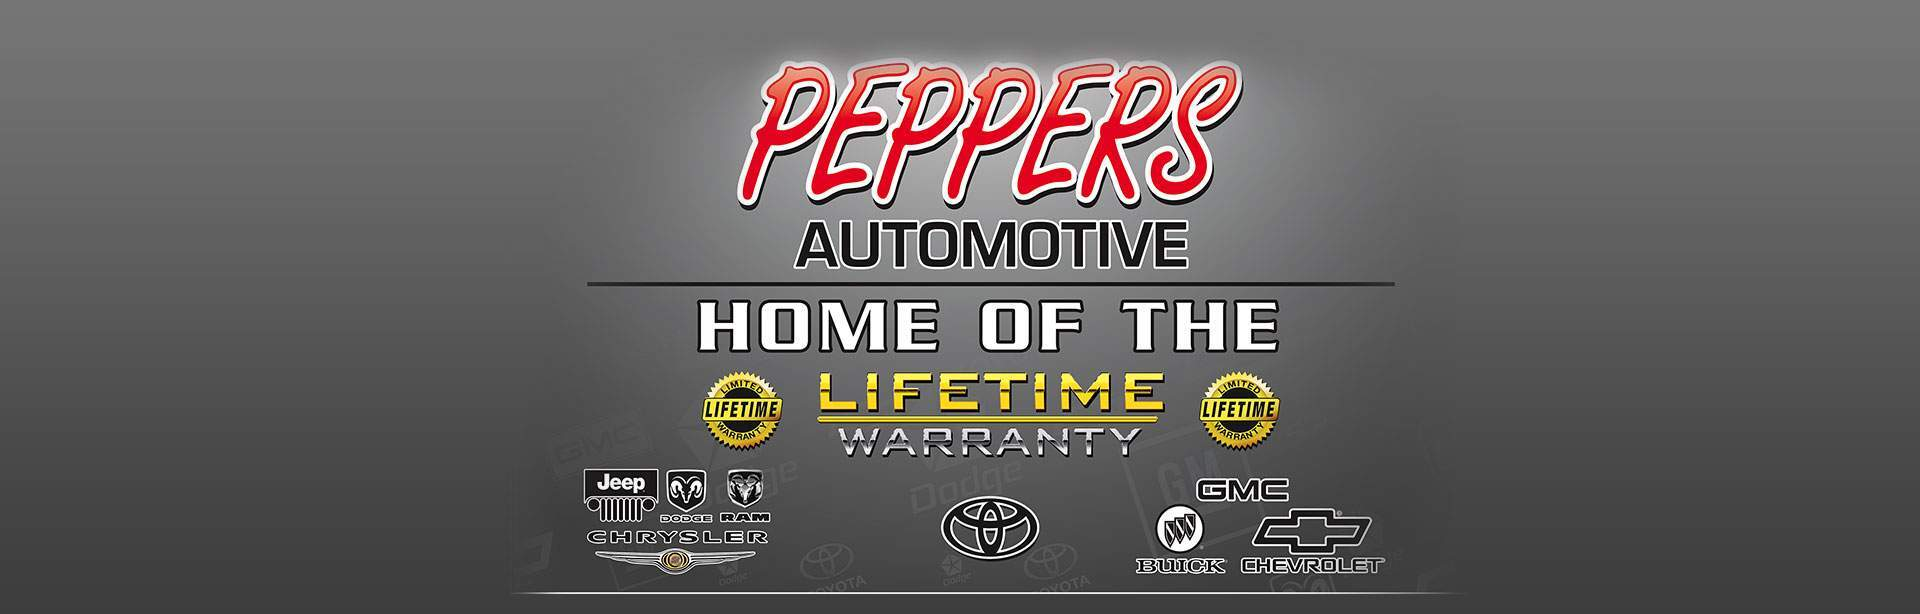 Peppers Automotive - Home of the Lifetime Warranty